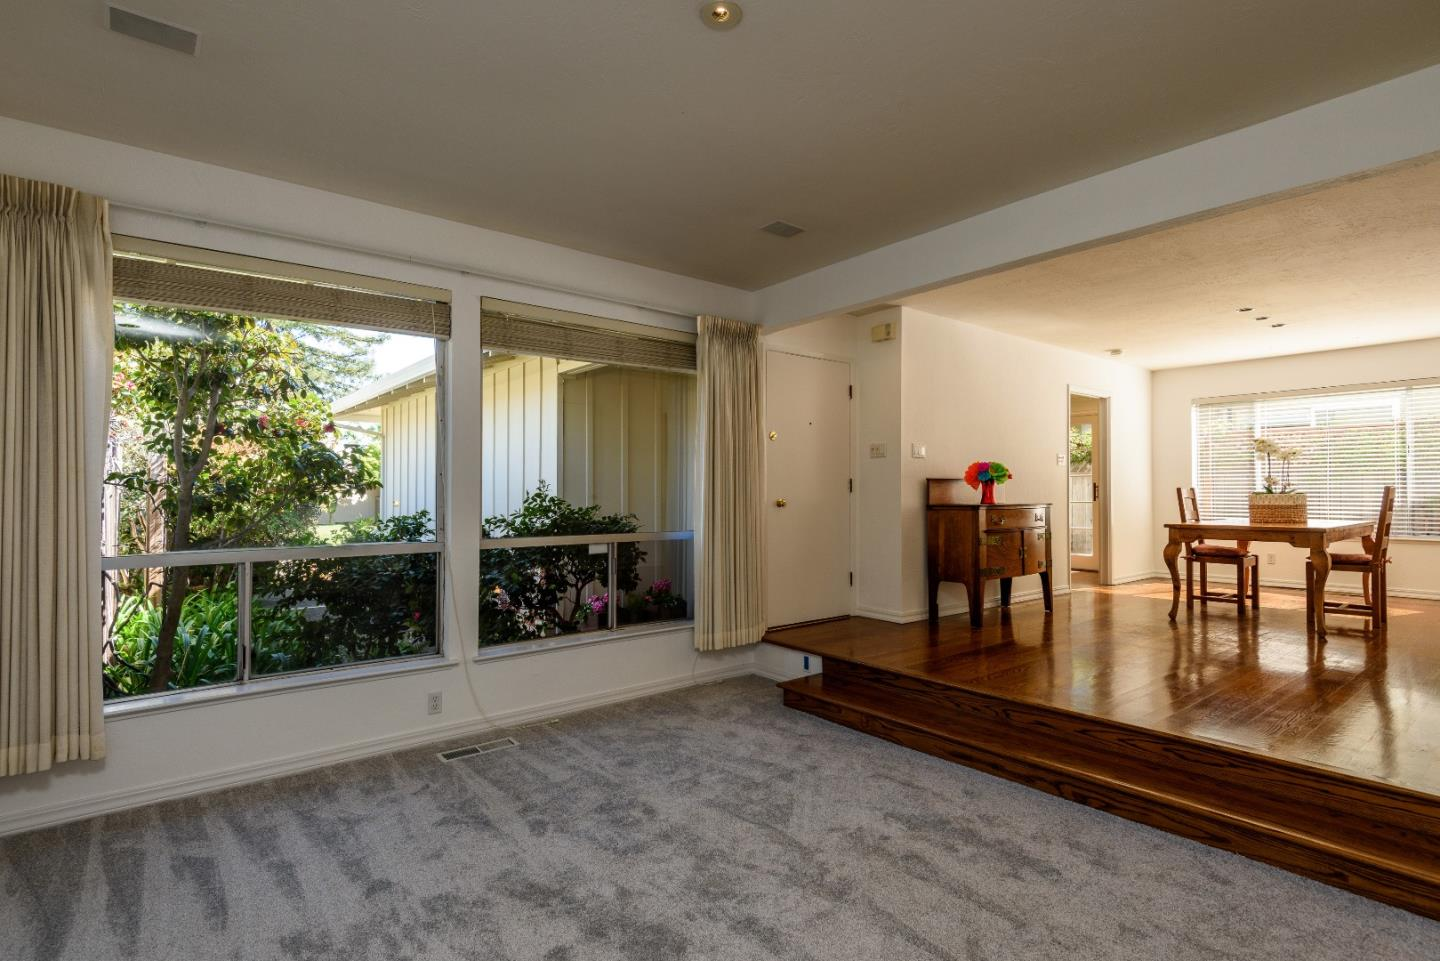 Additional photo for property listing at 2262 Sharon Rd  MENLO PARK, CALIFORNIA 94025